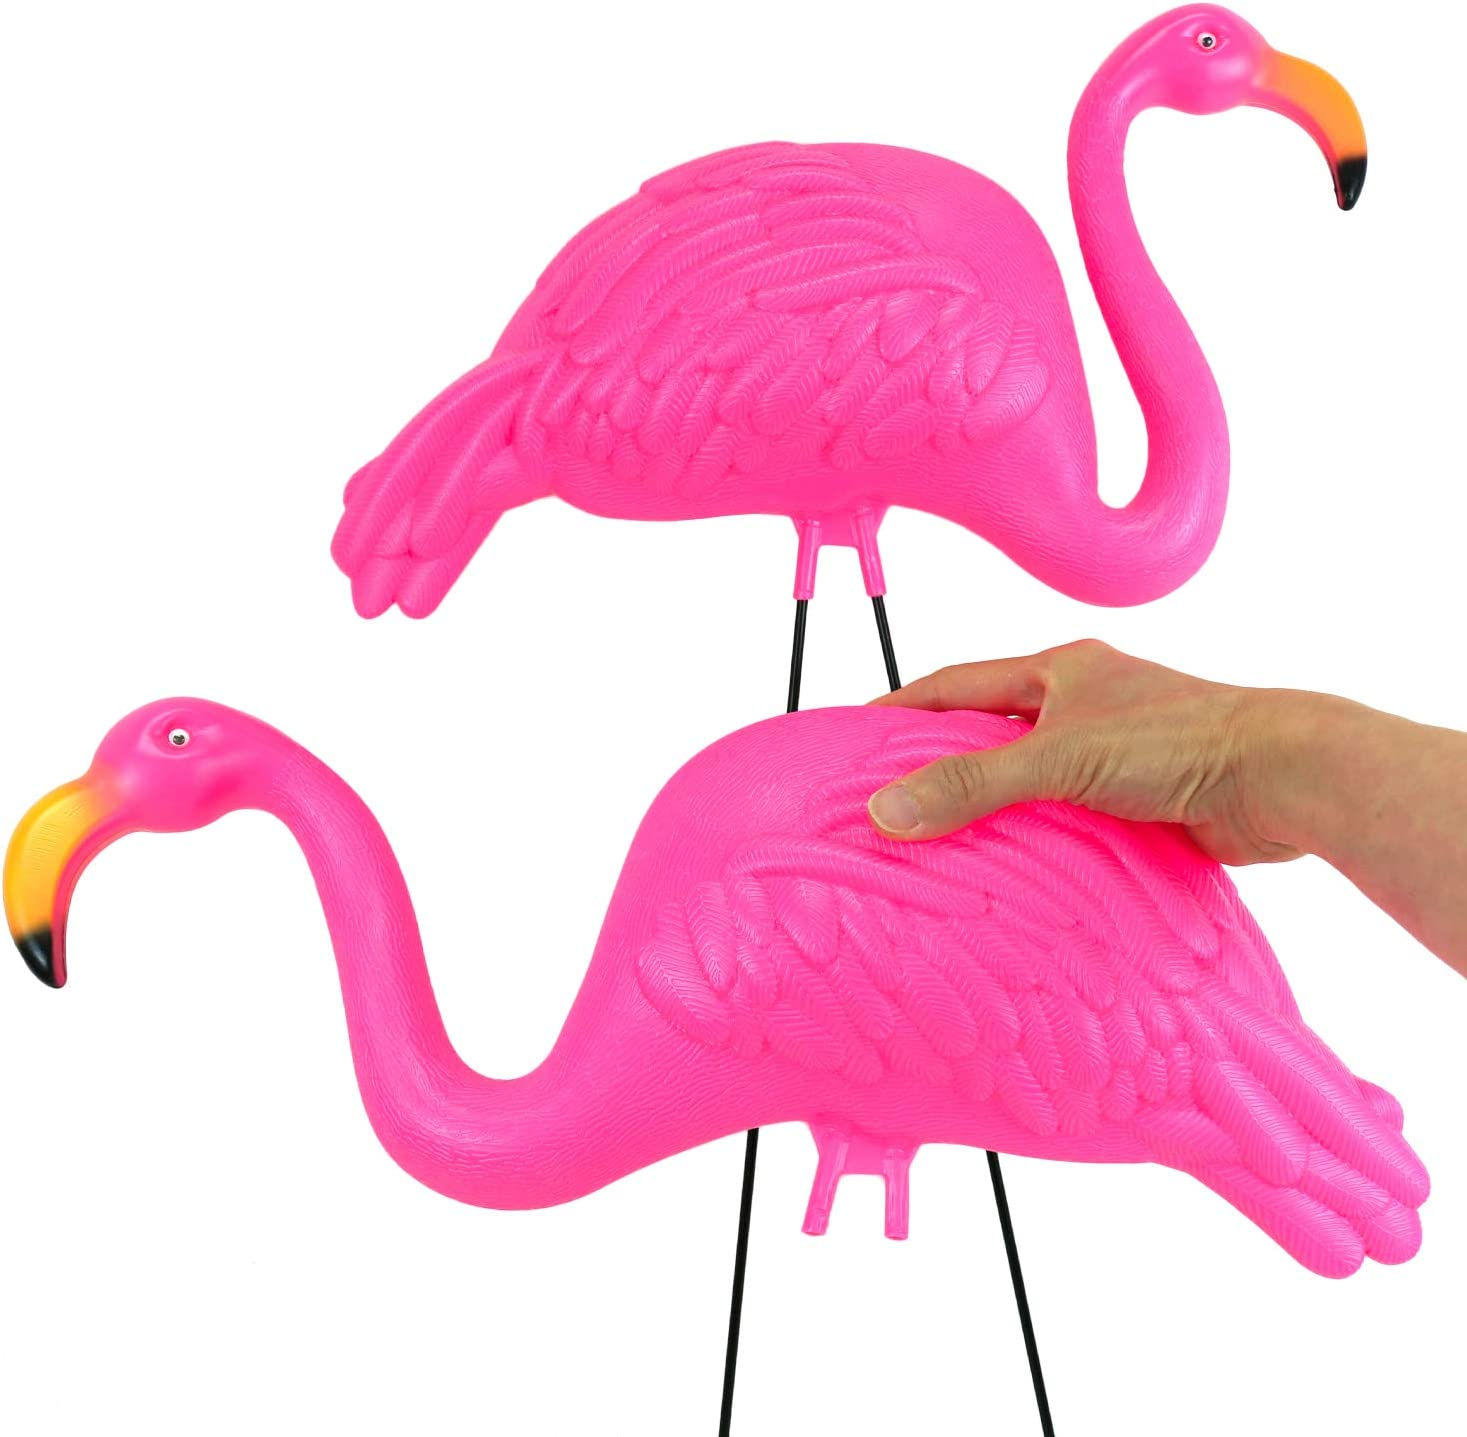 """GIFTEXPRESS Pack of 2, 34"""" Large Bright Pink Flamingo Yard Ornament/ Flamingo Lawn Ornaments/ink Flamingo Garden Yard Stakes/ Adjustable Feet Length and Gesture : Garden & Outdoor"""